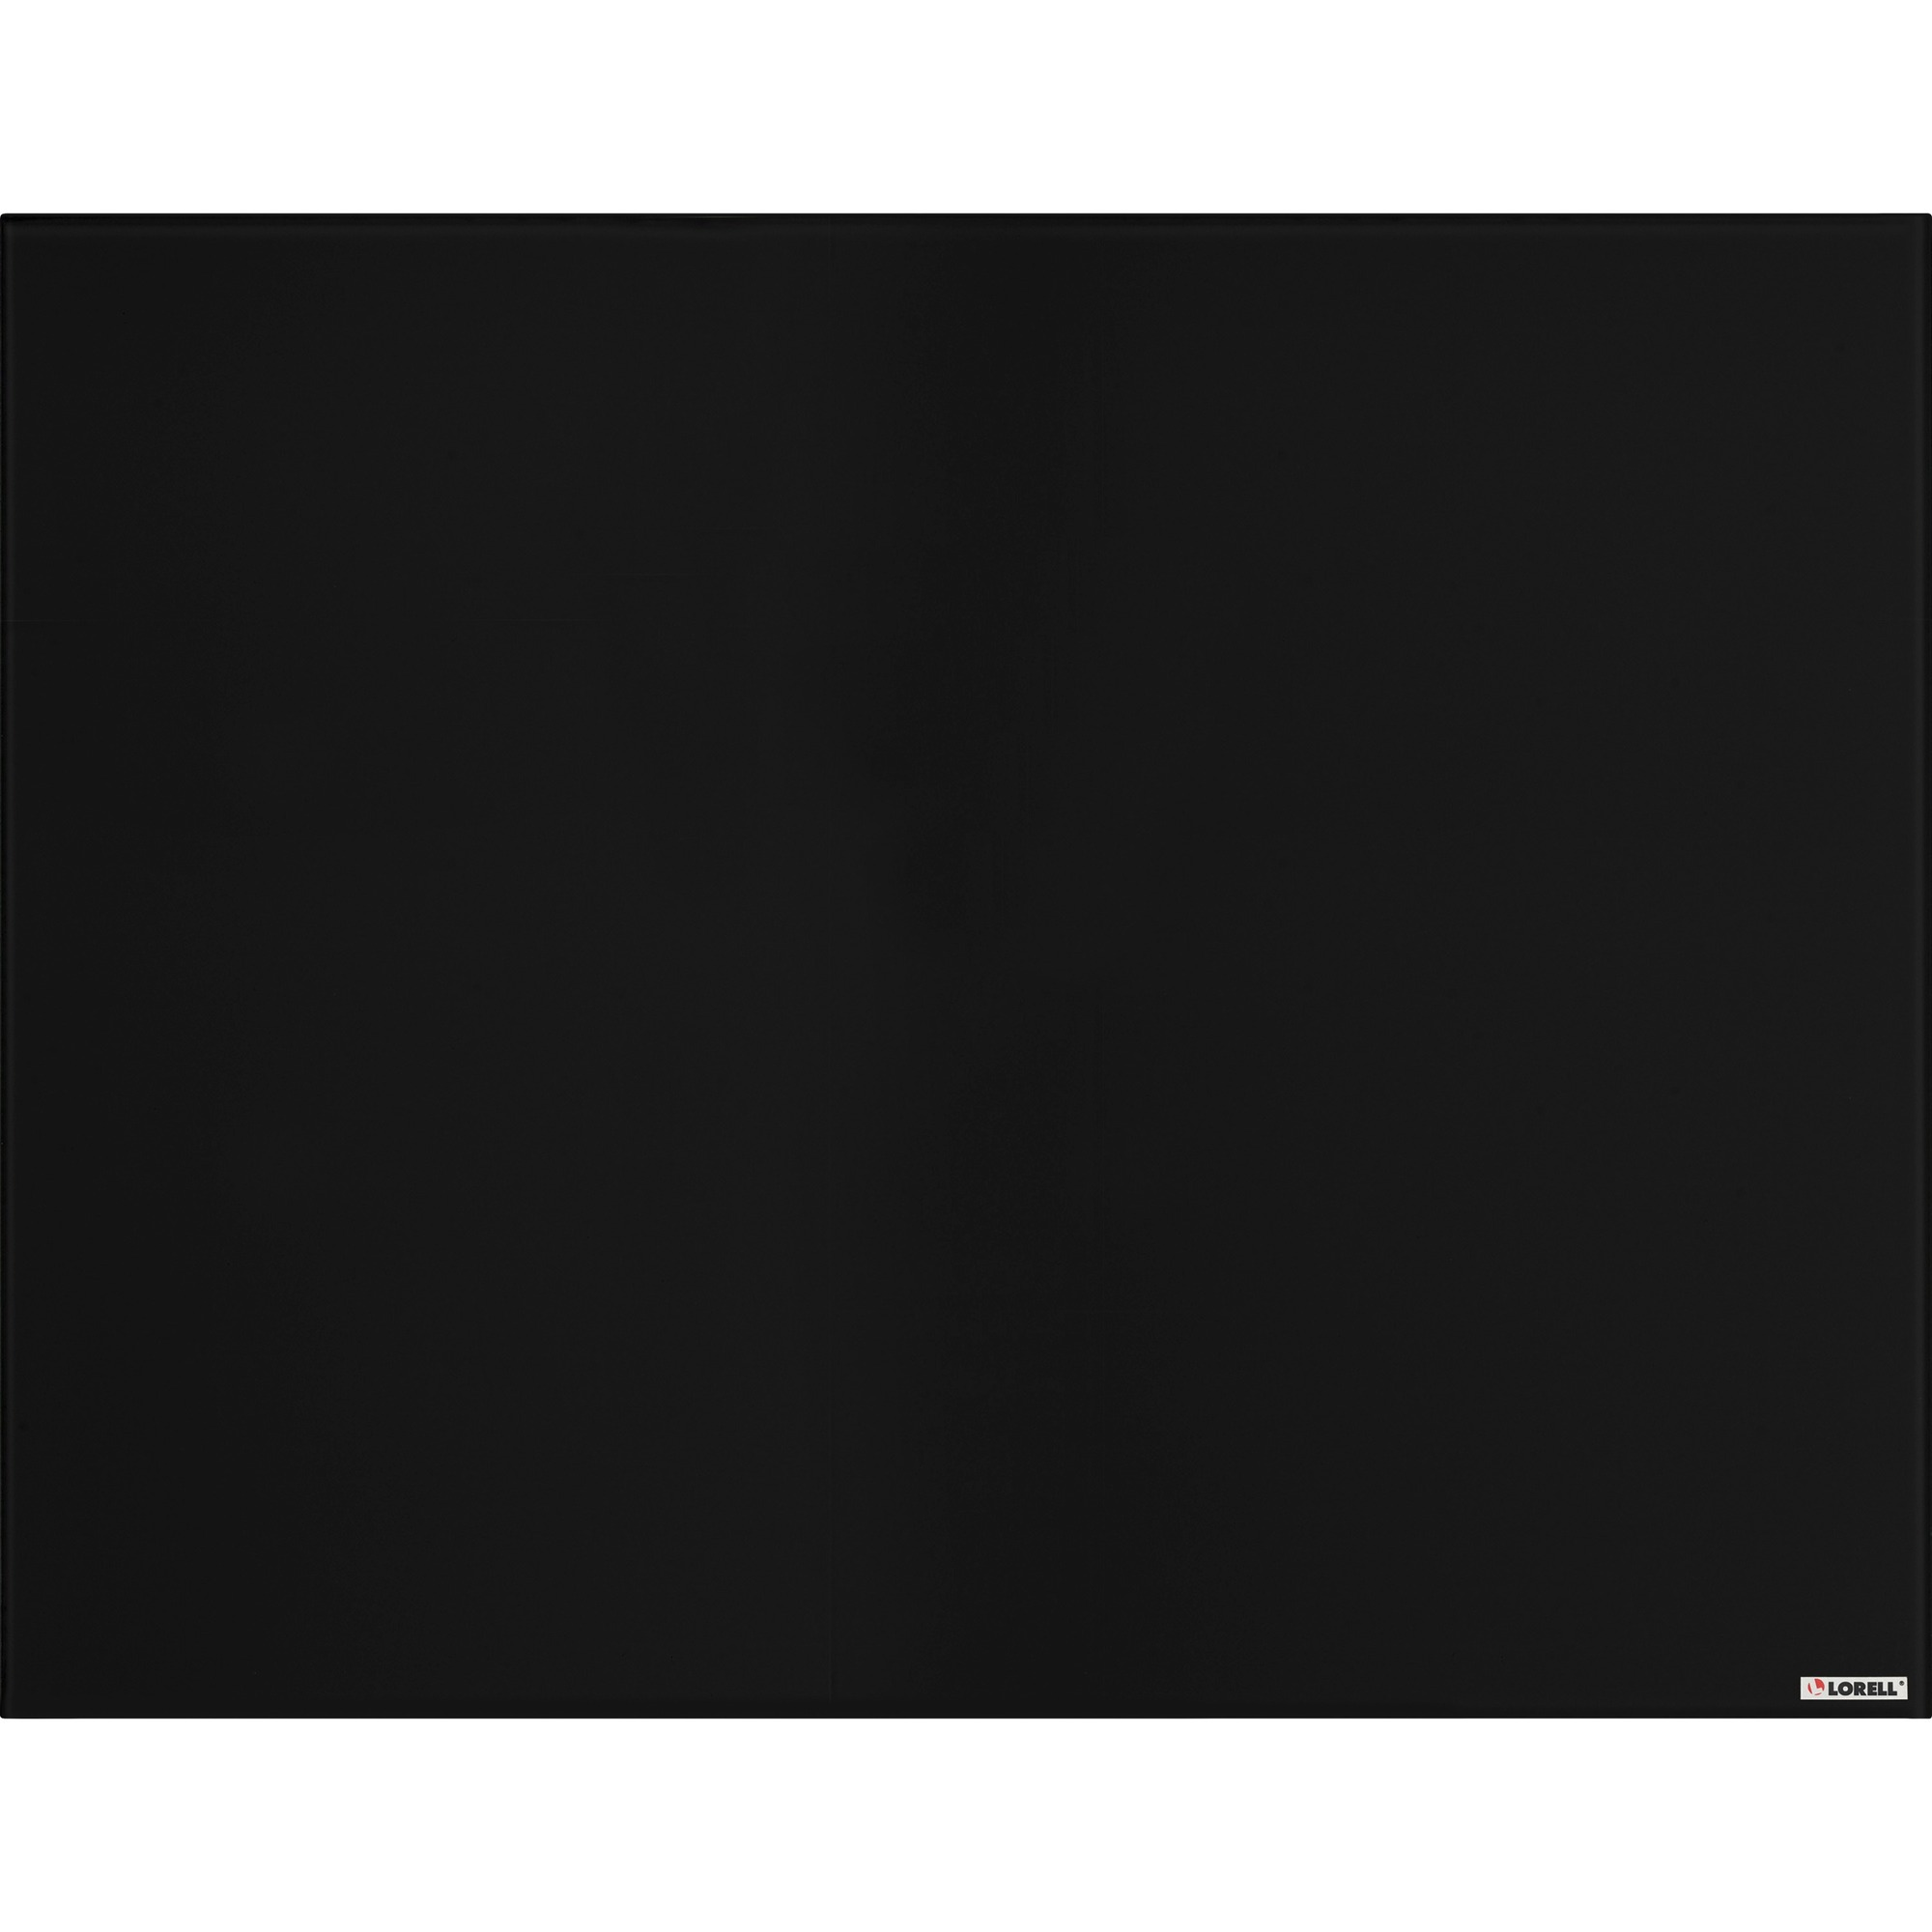 Lorell Magnetic Glass Color Dry Erase Board - 48 (4 Ft) Width X 36 (3 Ft) Height - Black Glass Surface - Rectangle - Mount - 1 Each